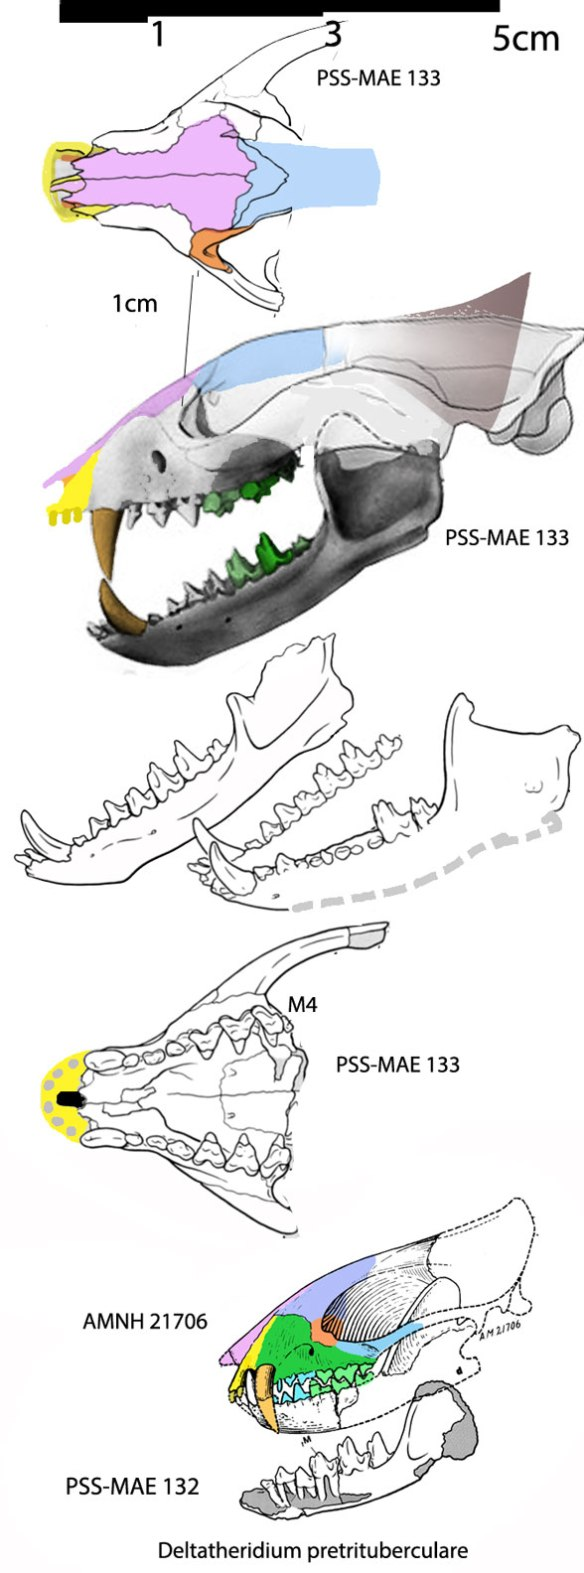 Figure 1. Deltatheridium skulls, PSS-MAE 132, 133 and AMNH 21706.